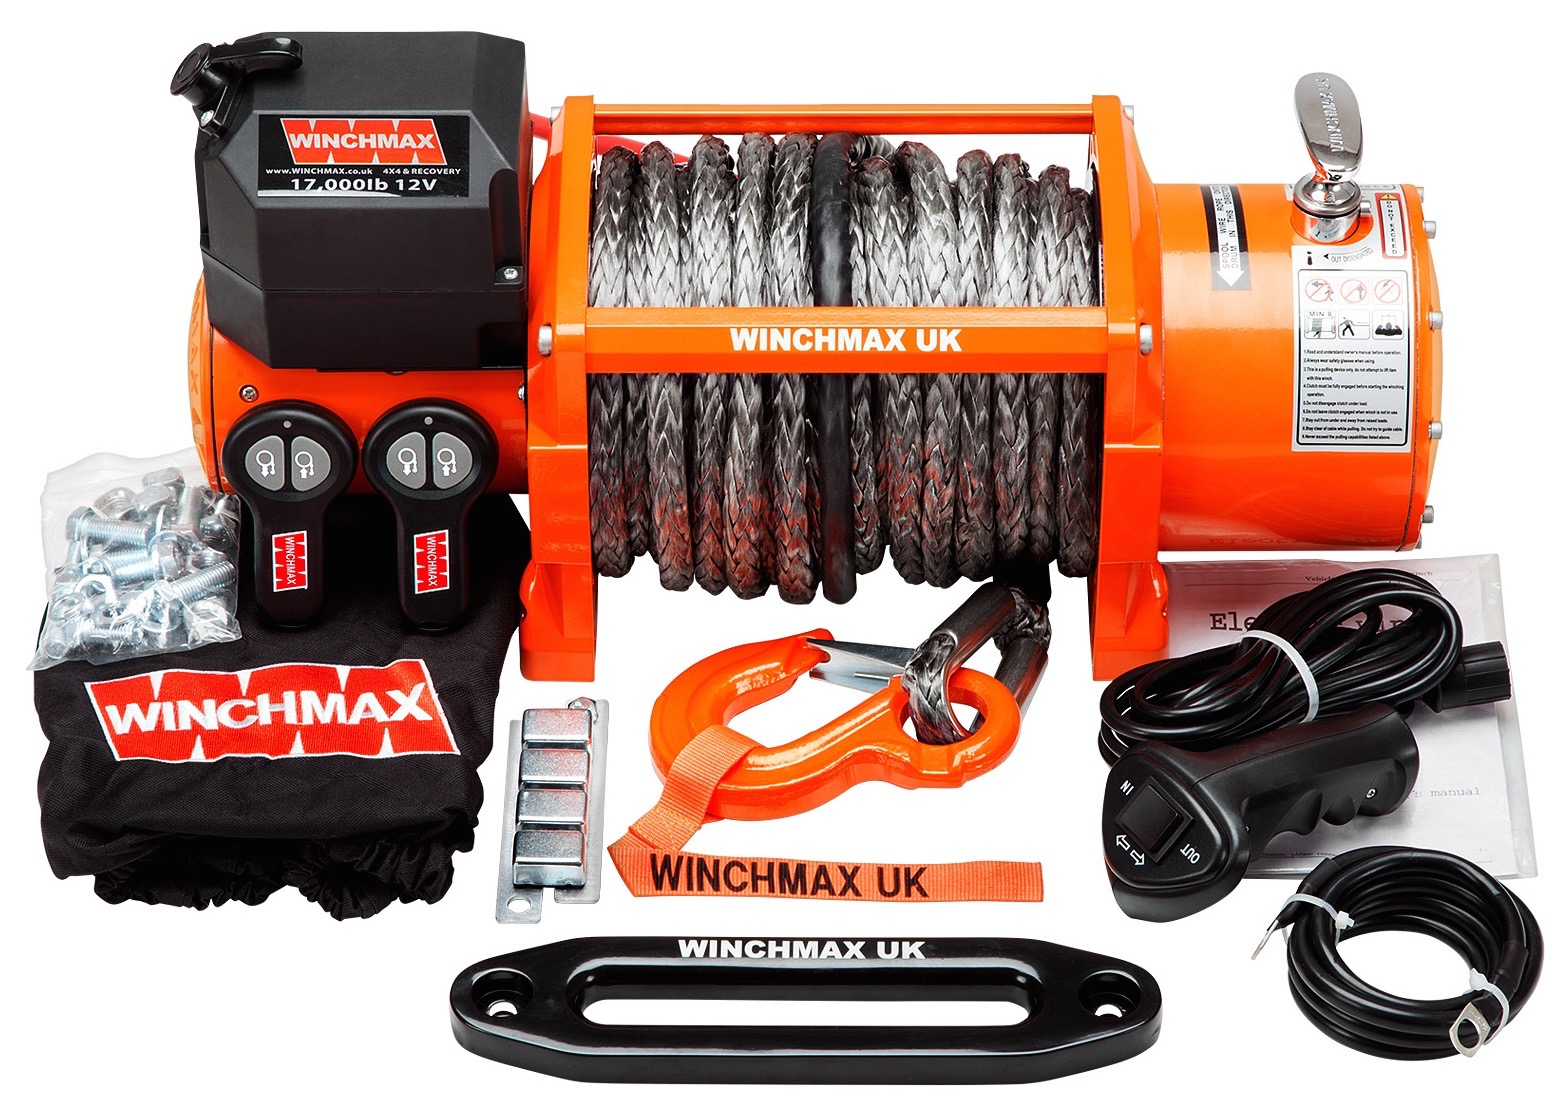 product_view.php?pid=WINCHMAX 17000LB 24V ELECTRIC WINCH DYNEEMA SYNTHETIC ROPE WITH WIRELESS REMOTES